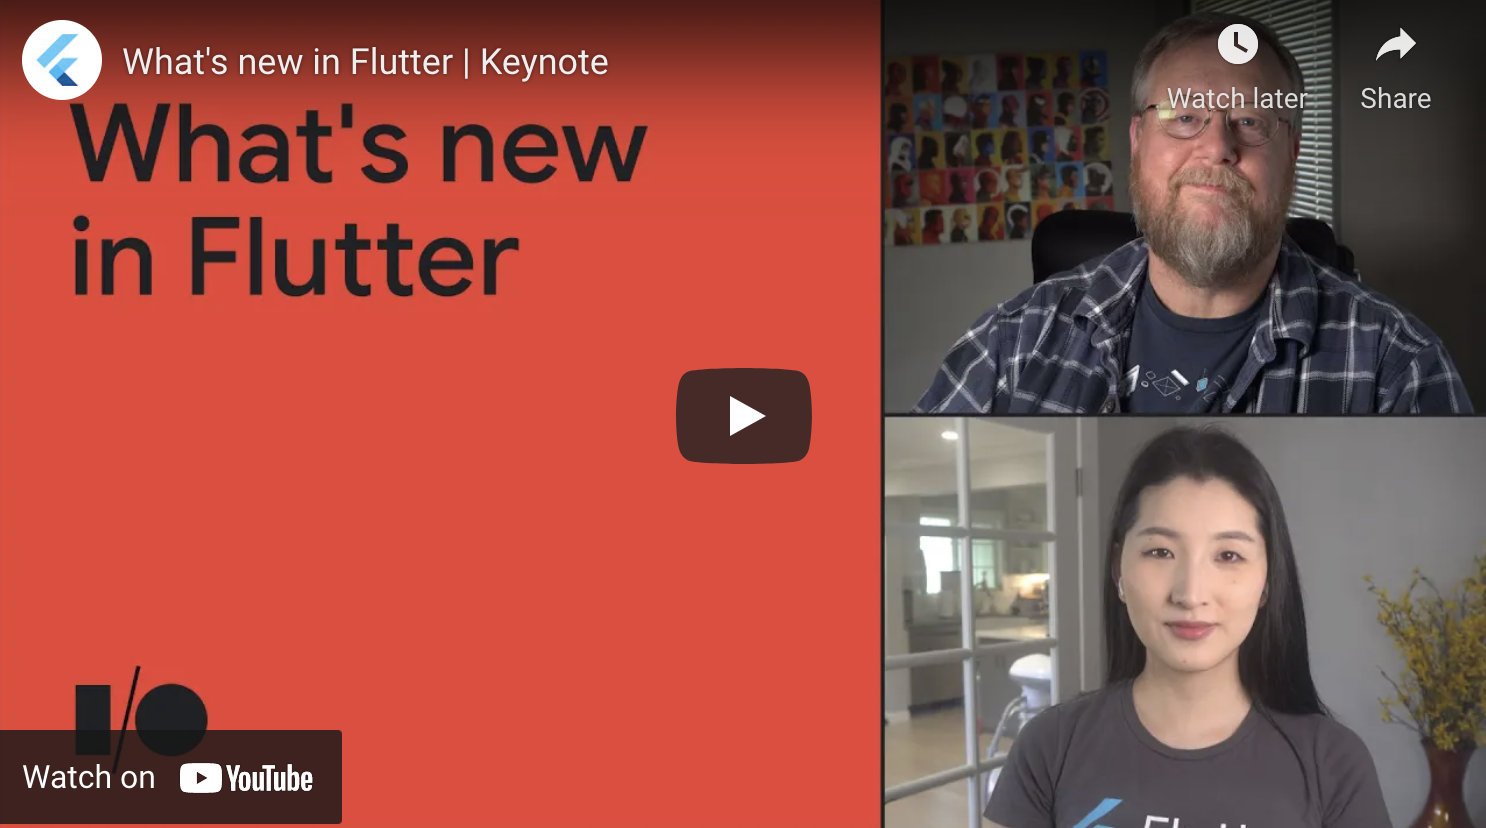 What's new in Flutter